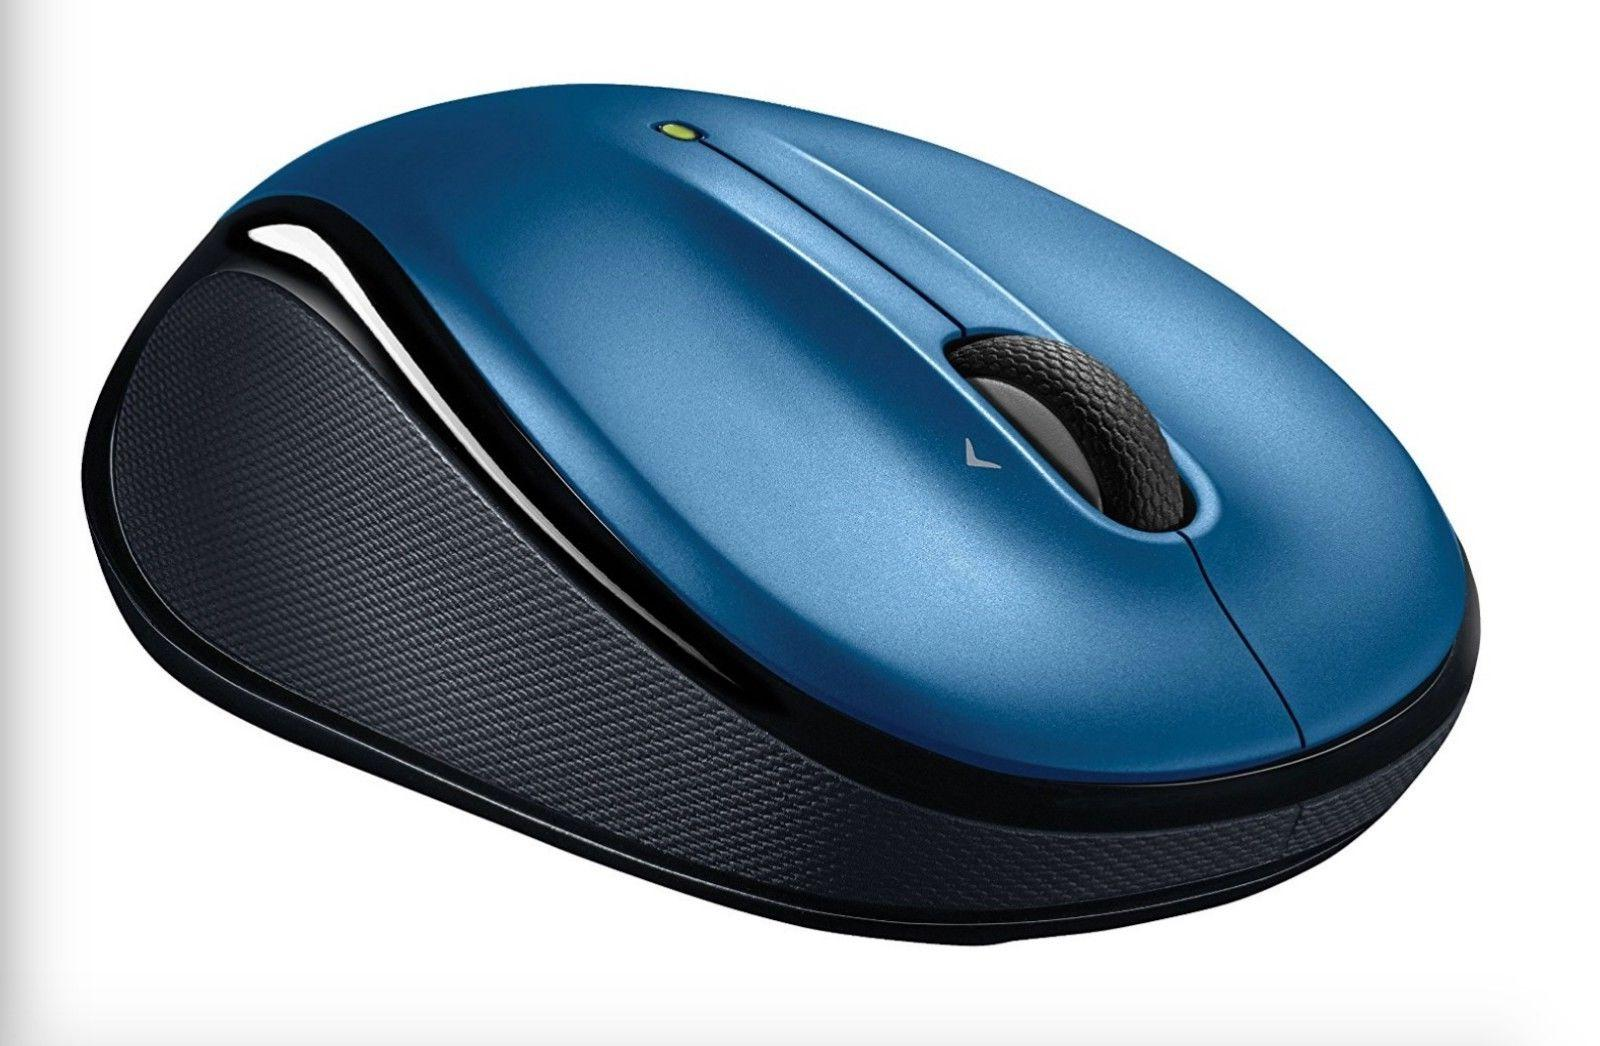 Logitech with Designed-For-Web Scrolling